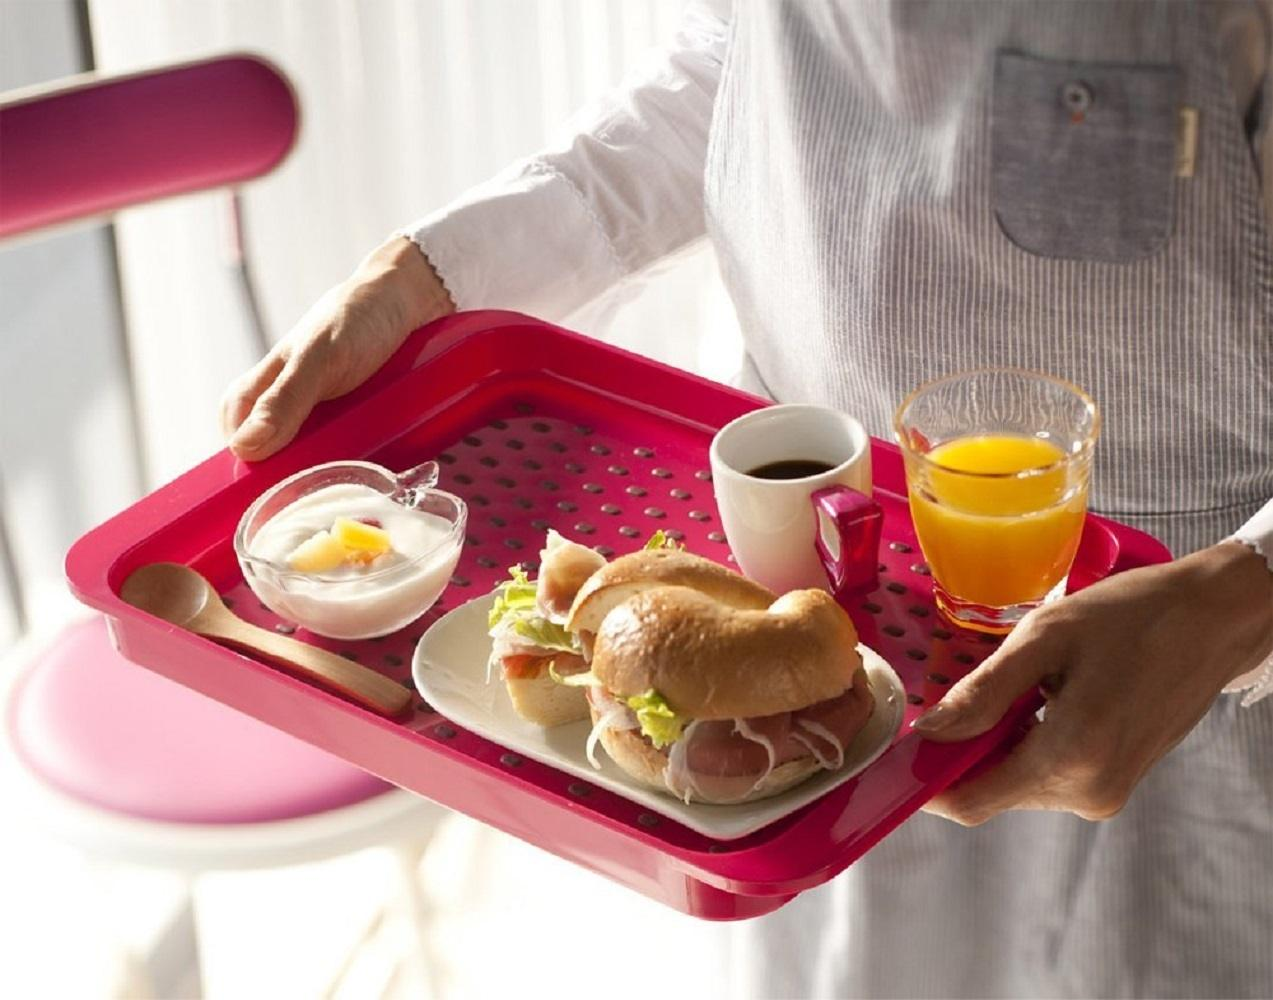 Joseph+Joseph+Grip+Non-Slip+Serving+Tray